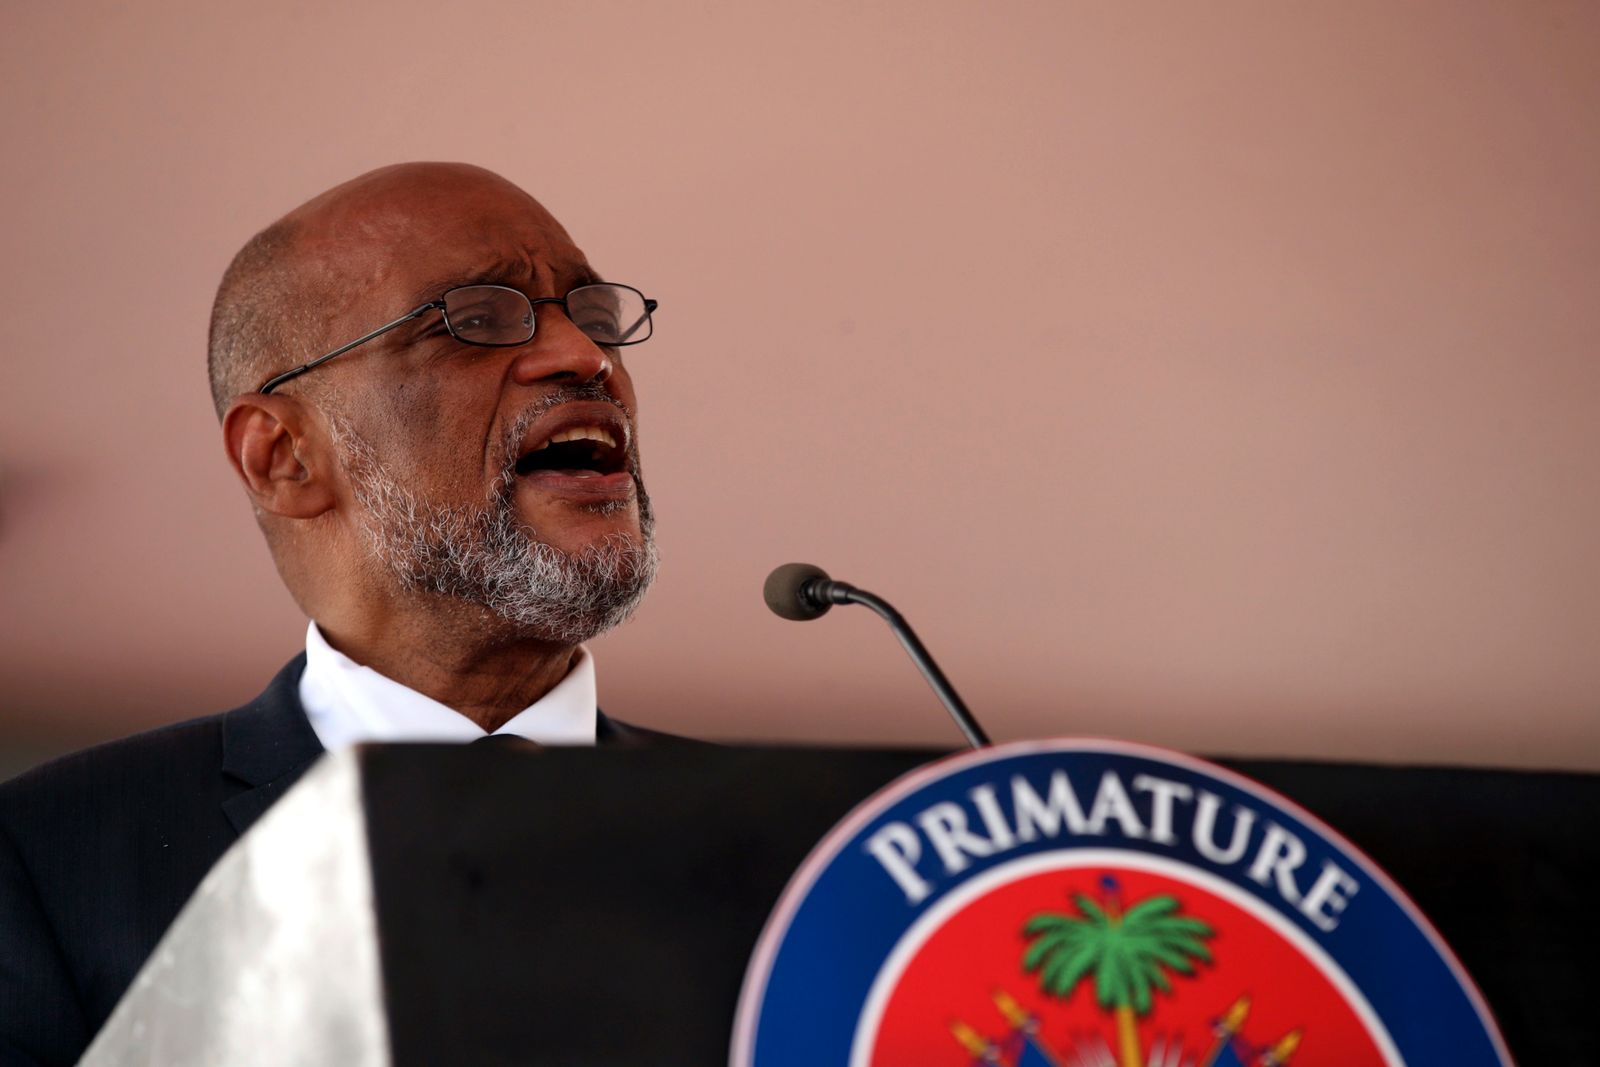 Ariel Henry inaugurated as Prime Minister